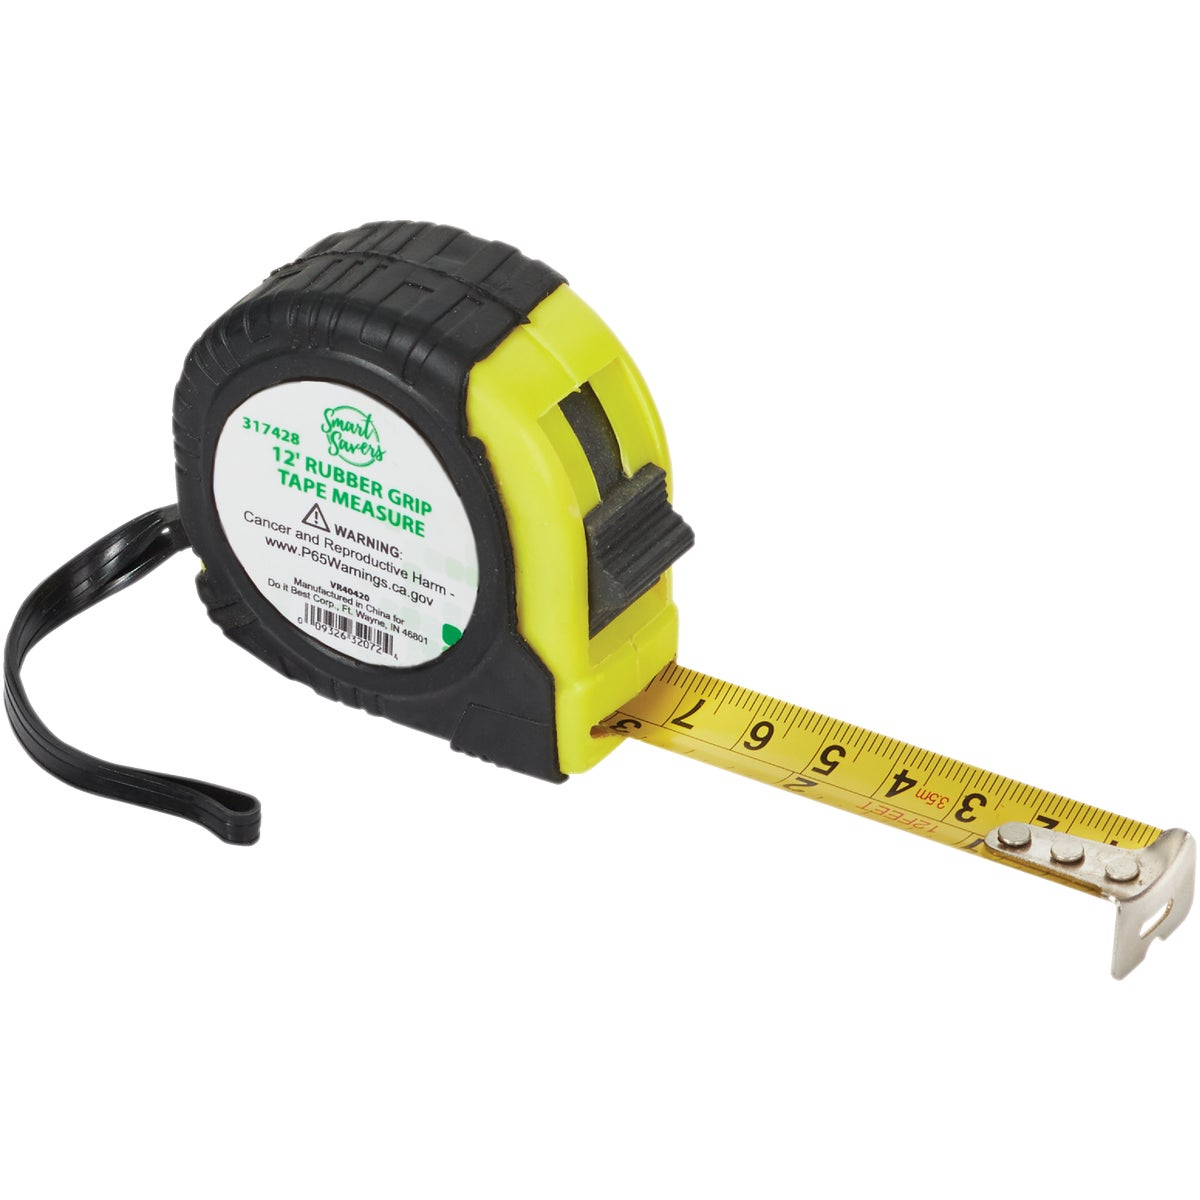 12' RBR GRP TAPE MEASURE - AR064-12(ST) by Do it Best